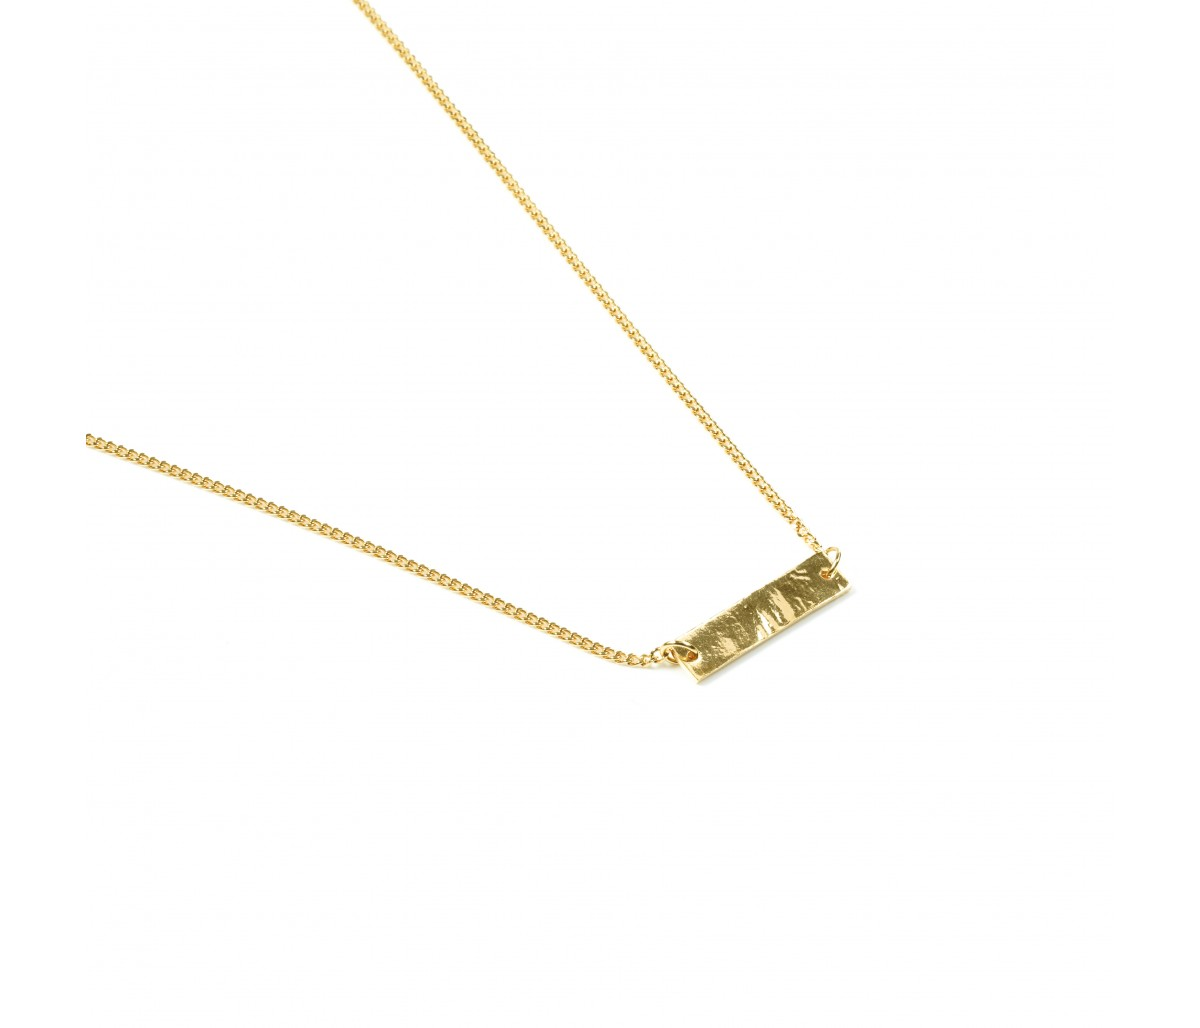 Paco necklace